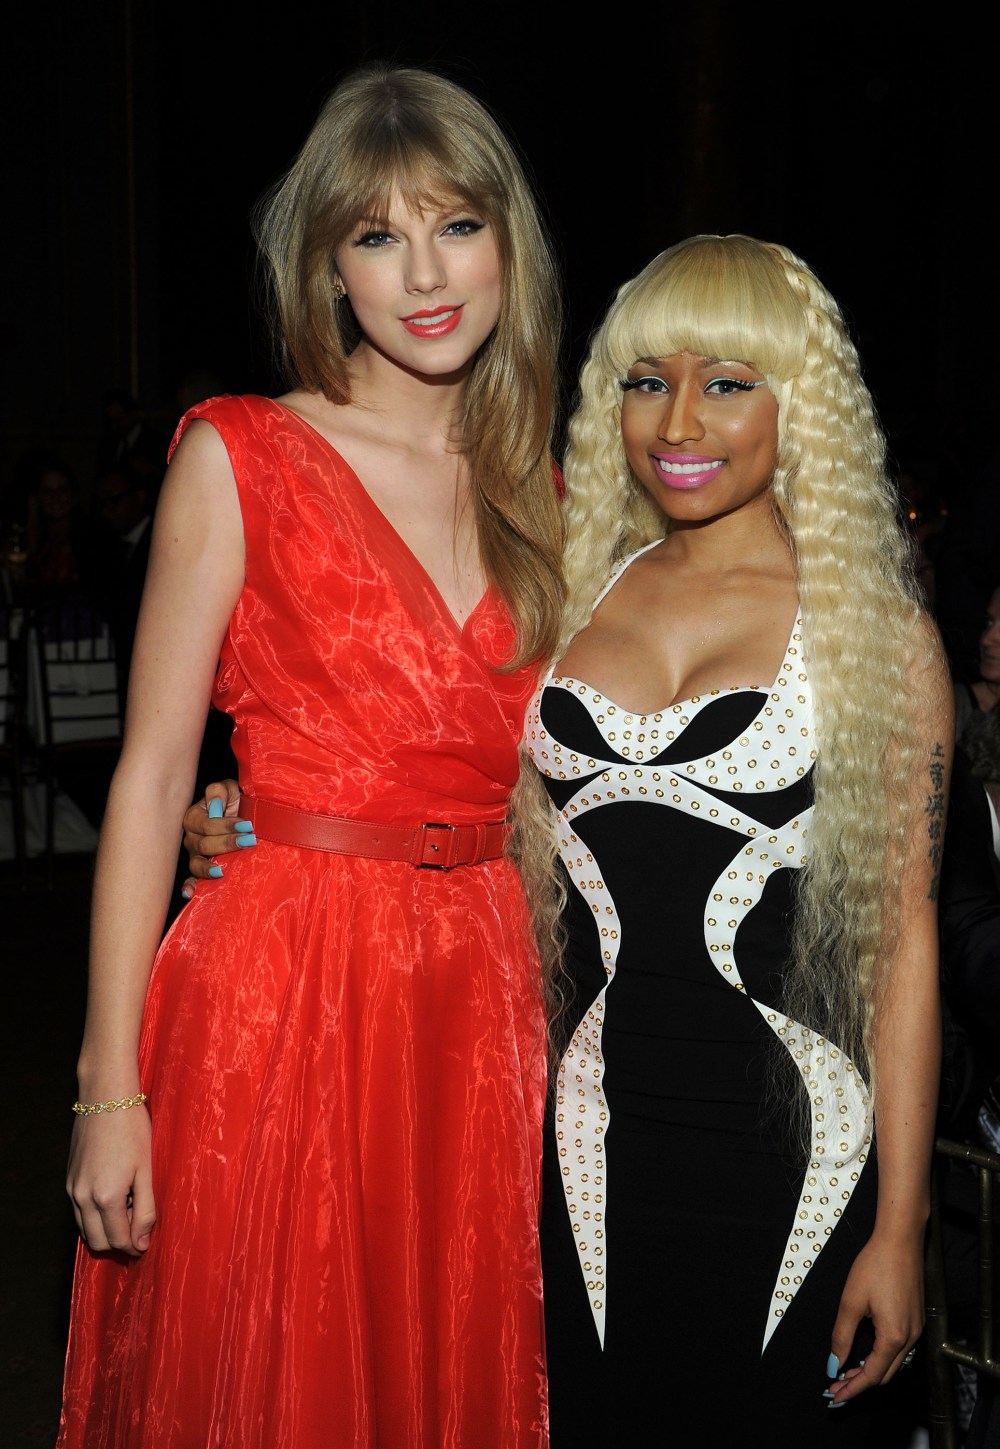 Taylor Swift vs. Nicki Minaj: A FEUD Is Brewing!